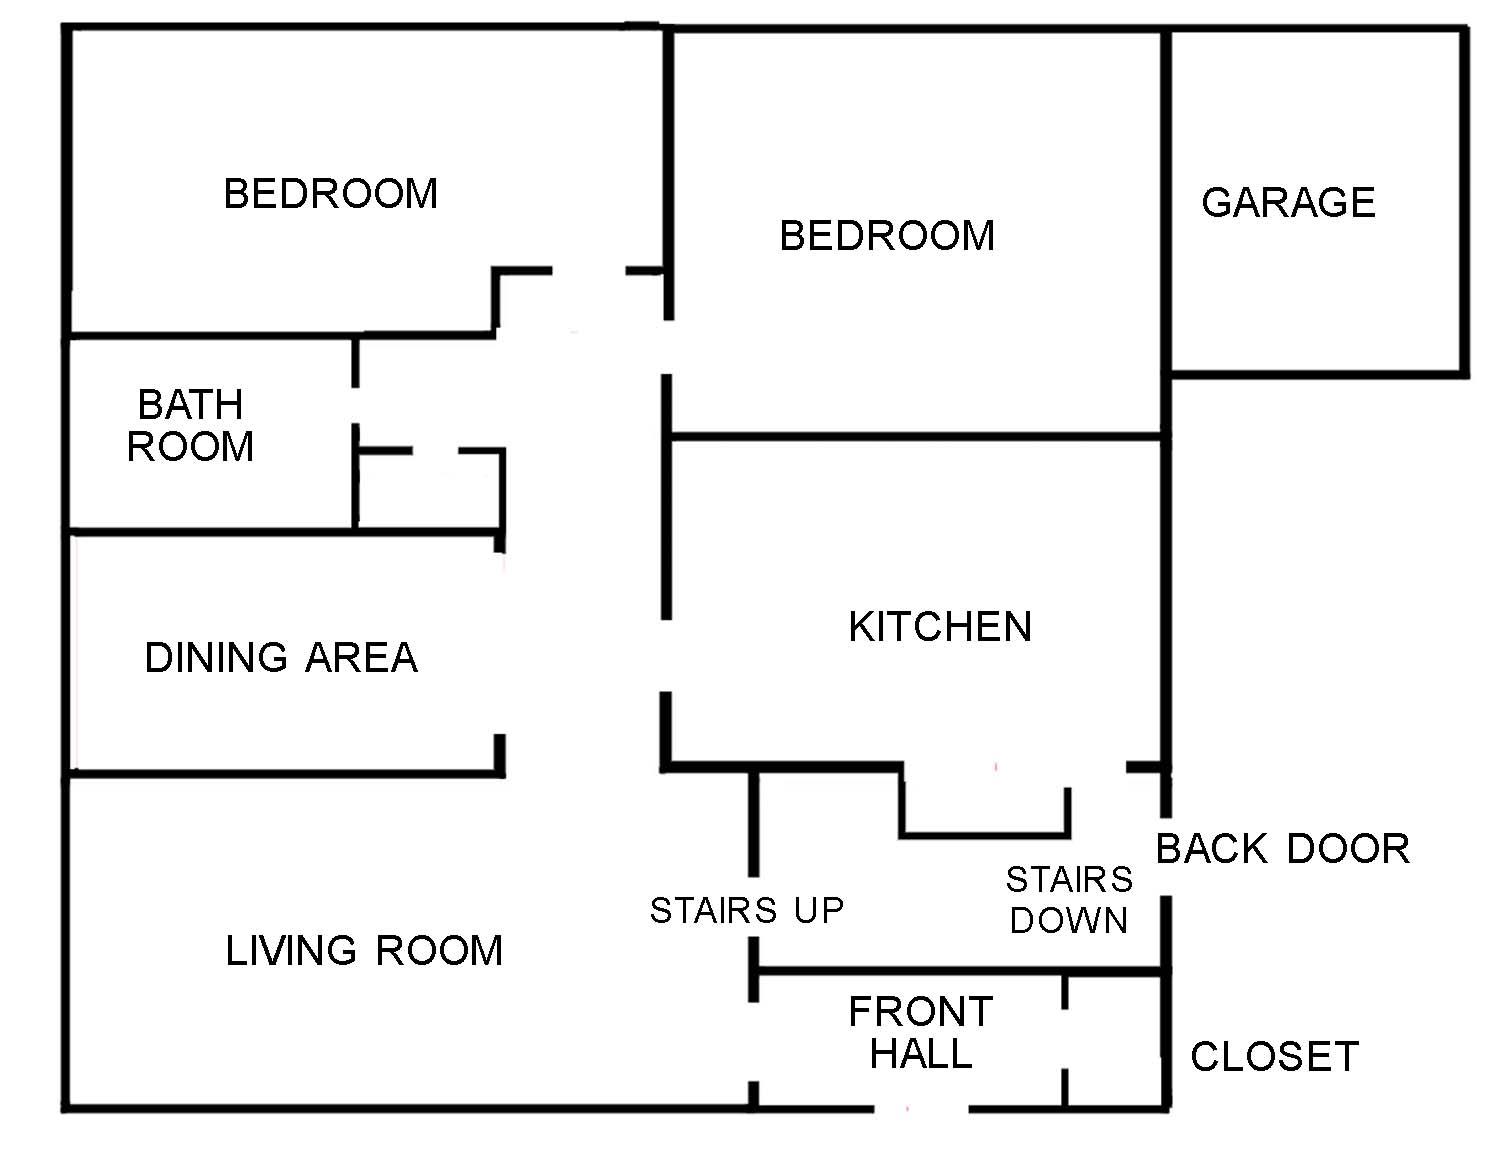 November 2014 class 5c 2014 15 Floor plans for my house